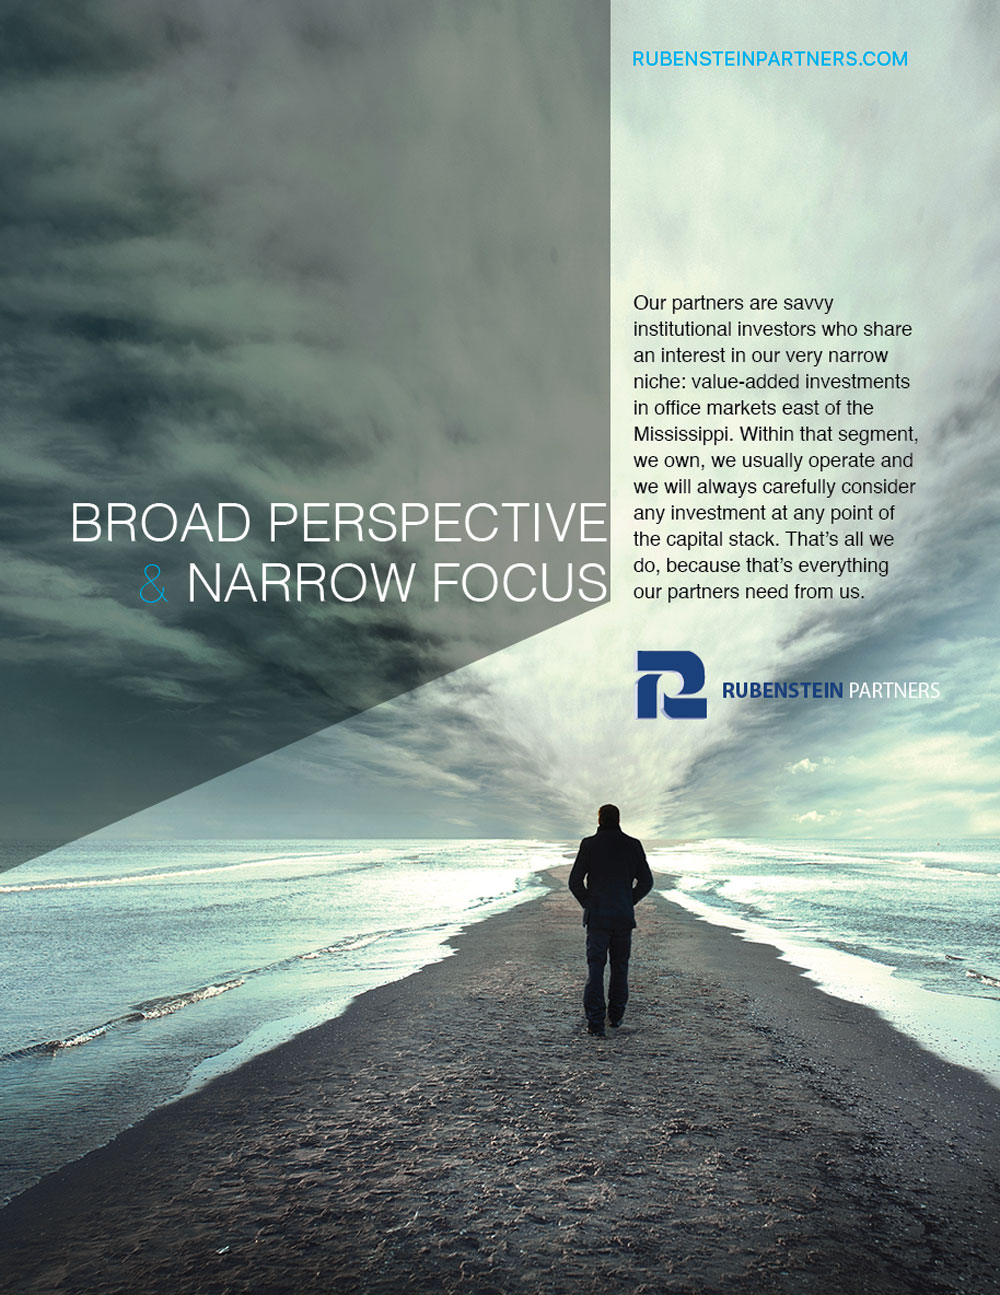 smart advertising graphic treatment with board perspective scenic view for investment firm